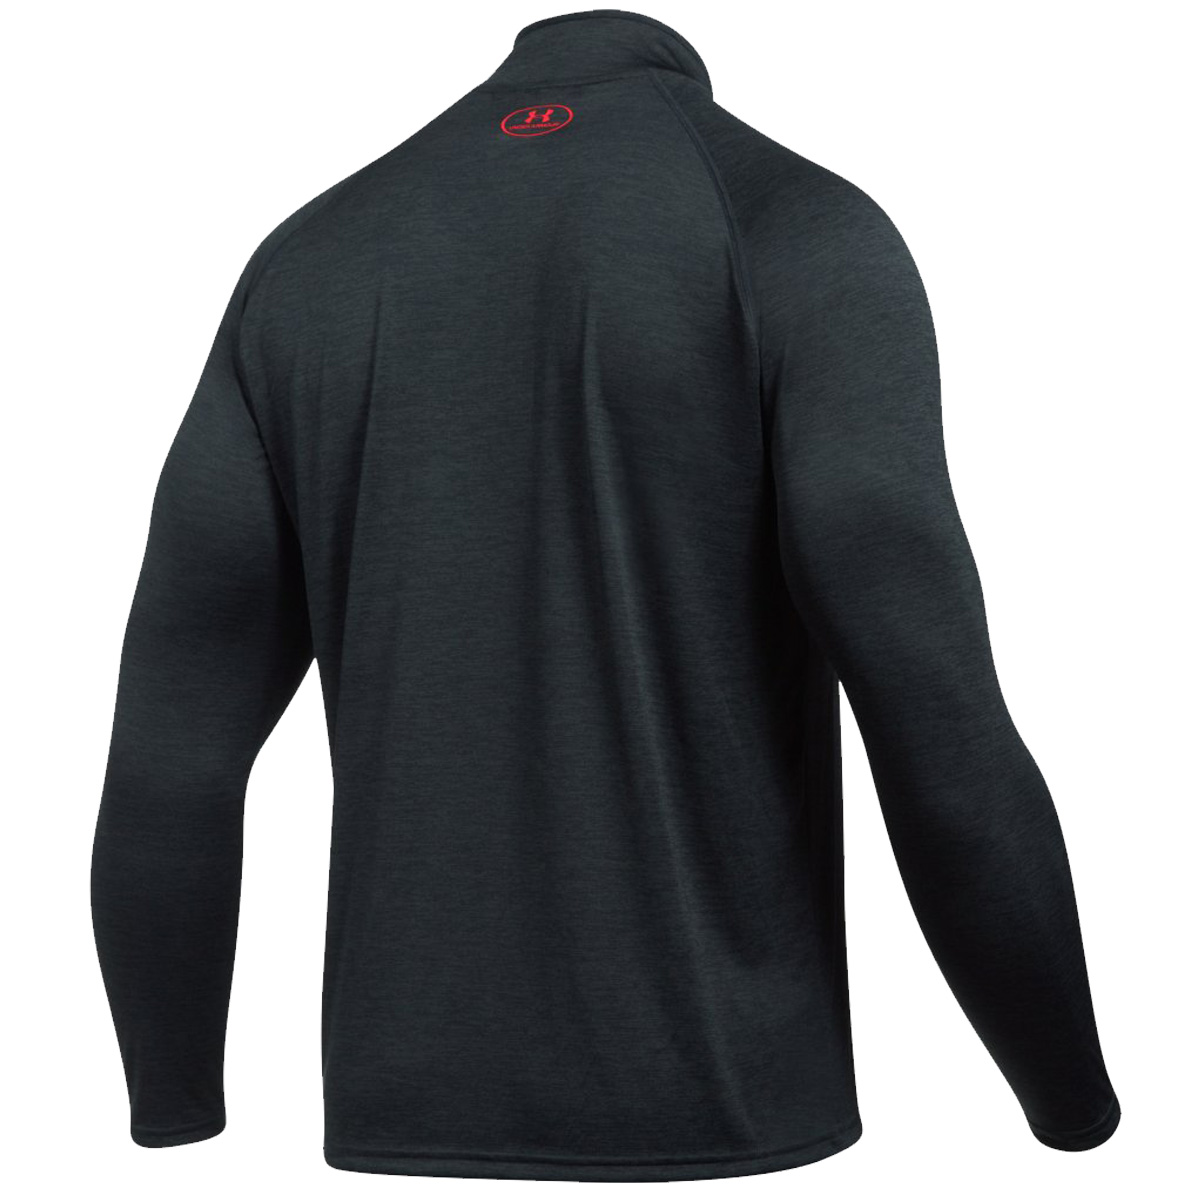 Under-Armour-Mens-UA-Tech-1-4-Zip-Long-Sleeve-Top-Workout-Layer-27-OFF-RRP thumbnail 7